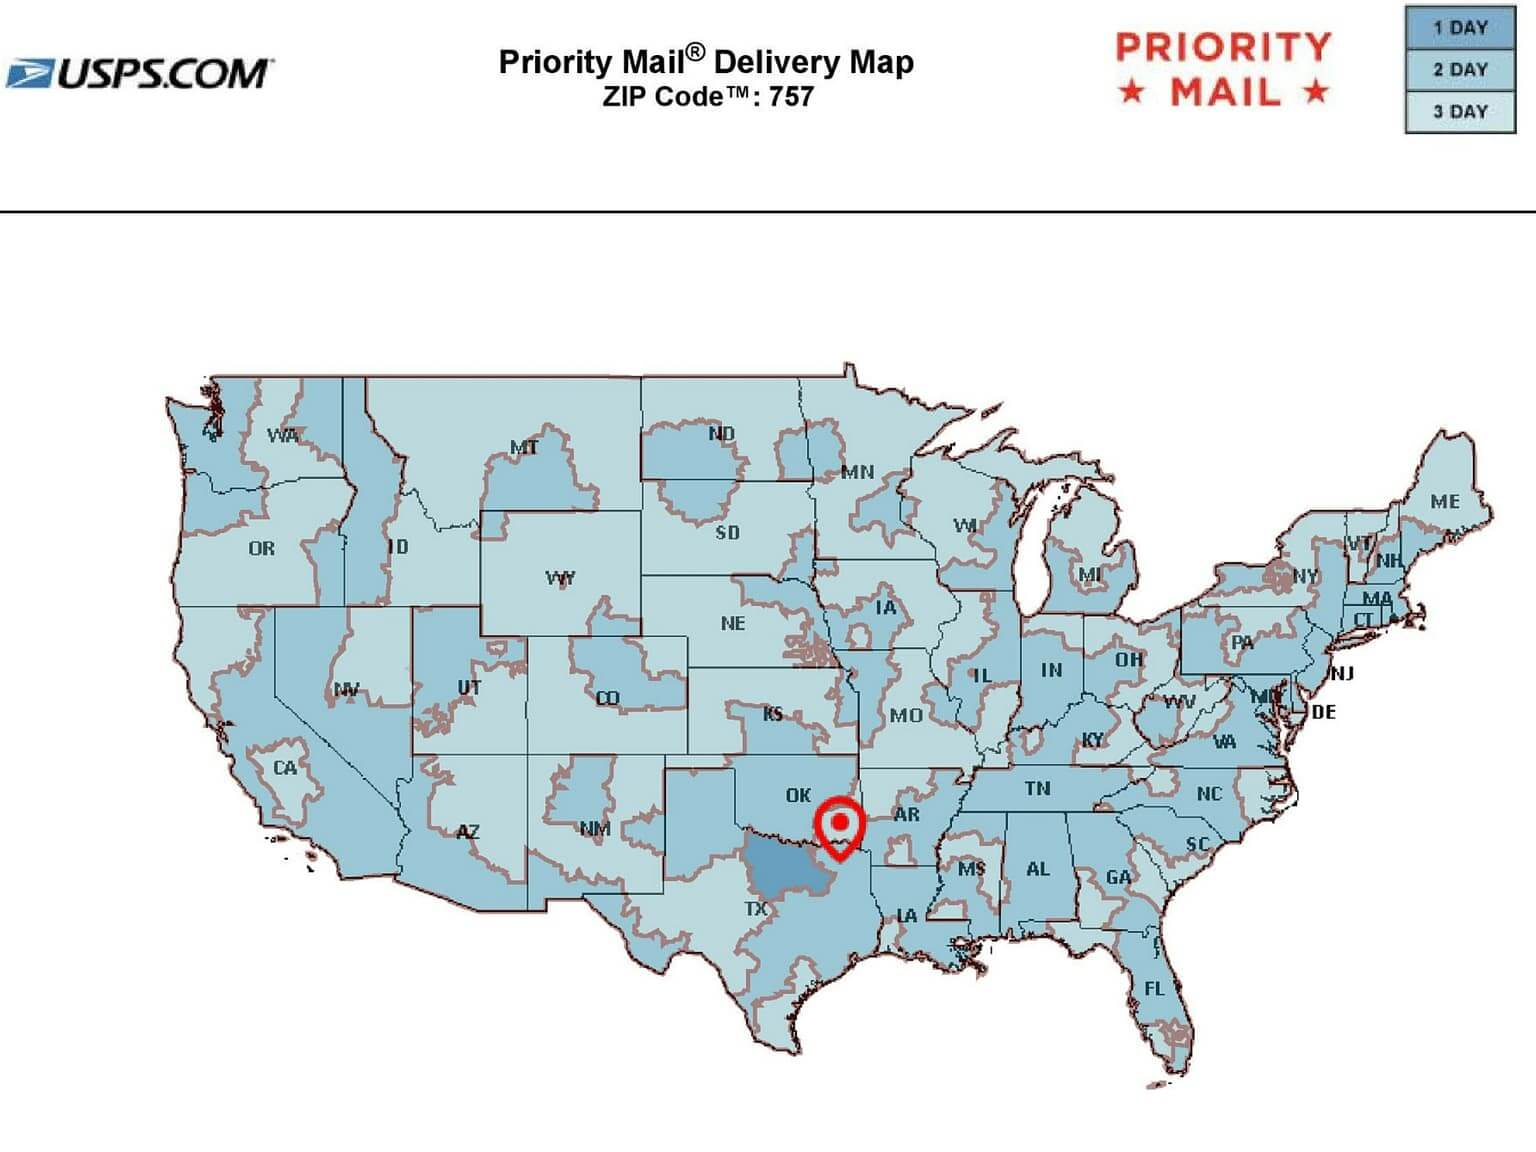 USPS Priority Mail Shipping Estimates from 75701